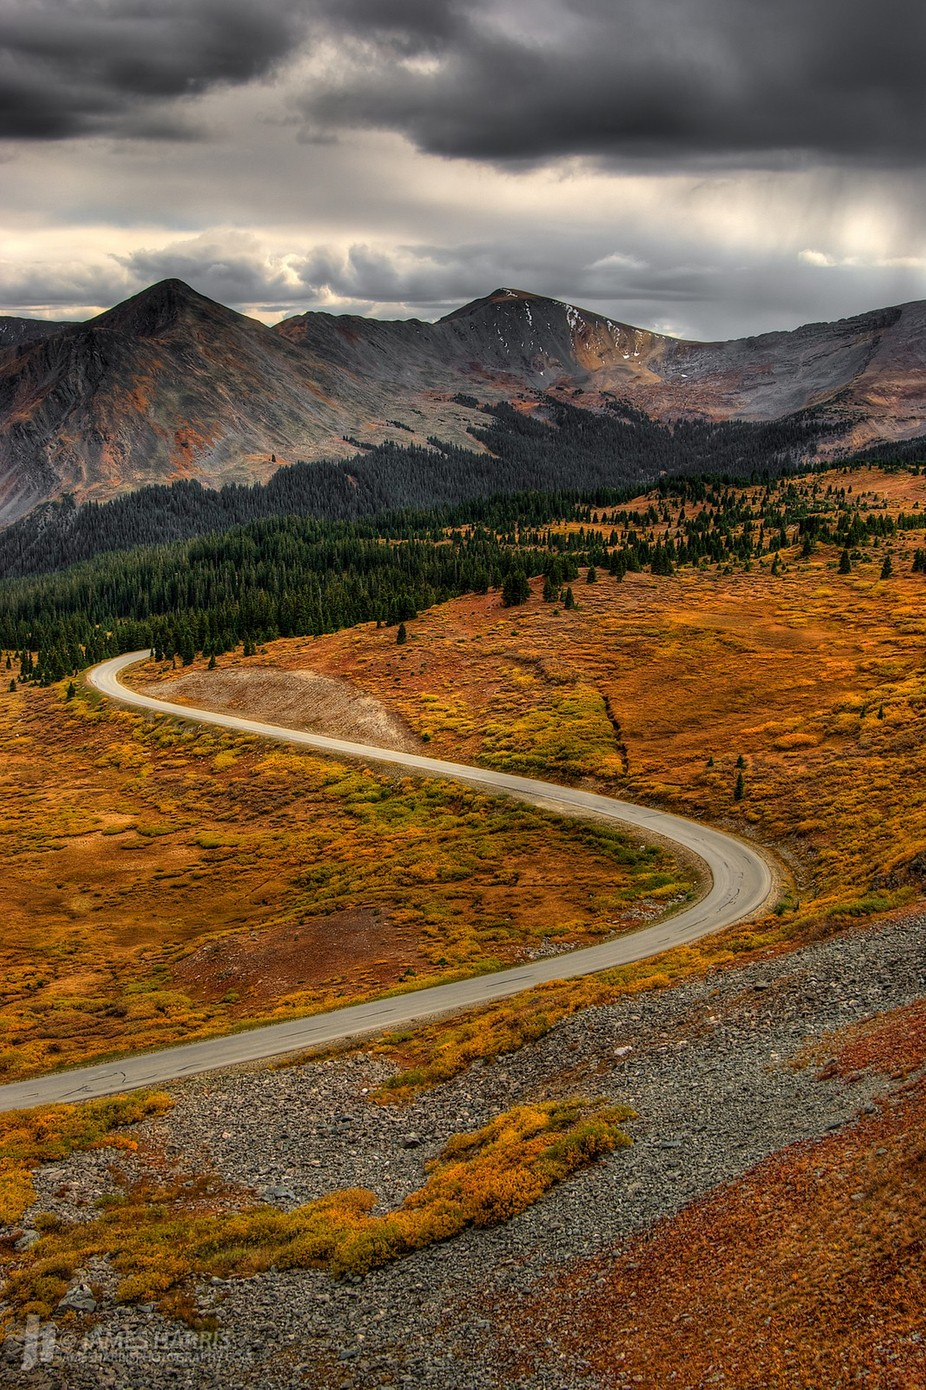 Cottonwood Pass Road, Colorado by jamesharrisphoto - A Road Trip Photo Contest